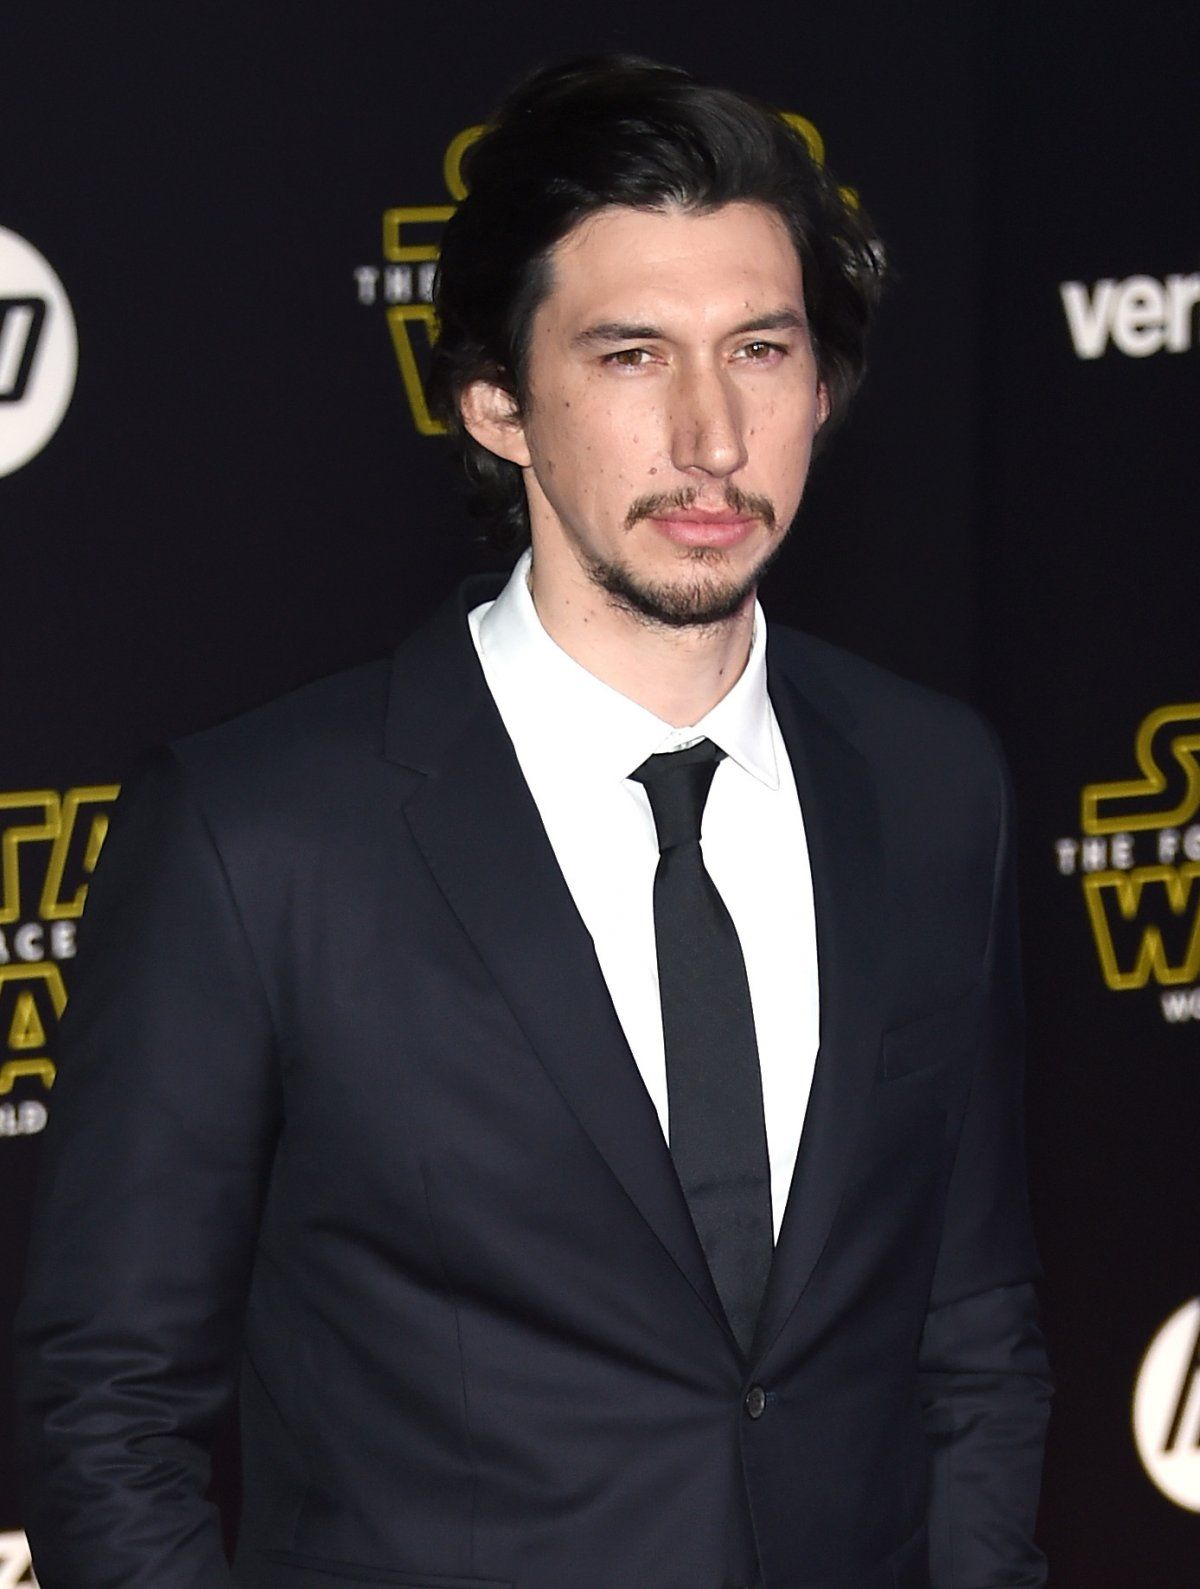 "Adam Driver, who plays Kylo Ren - Star Wars: The Force Awakens Red Carpet Premieres In Hollywood & Worldwide -  Star Wars - @starwars - #StarWars - @EpisodeVII -  Force Friday - #TheForceAwakens - FuTurXTV & Funk Gumbo Radio: http://www.live365.com/stations/sirhobson and ""Like"" us at: https://www.facebook.com/FUNKGUMBORADIO"